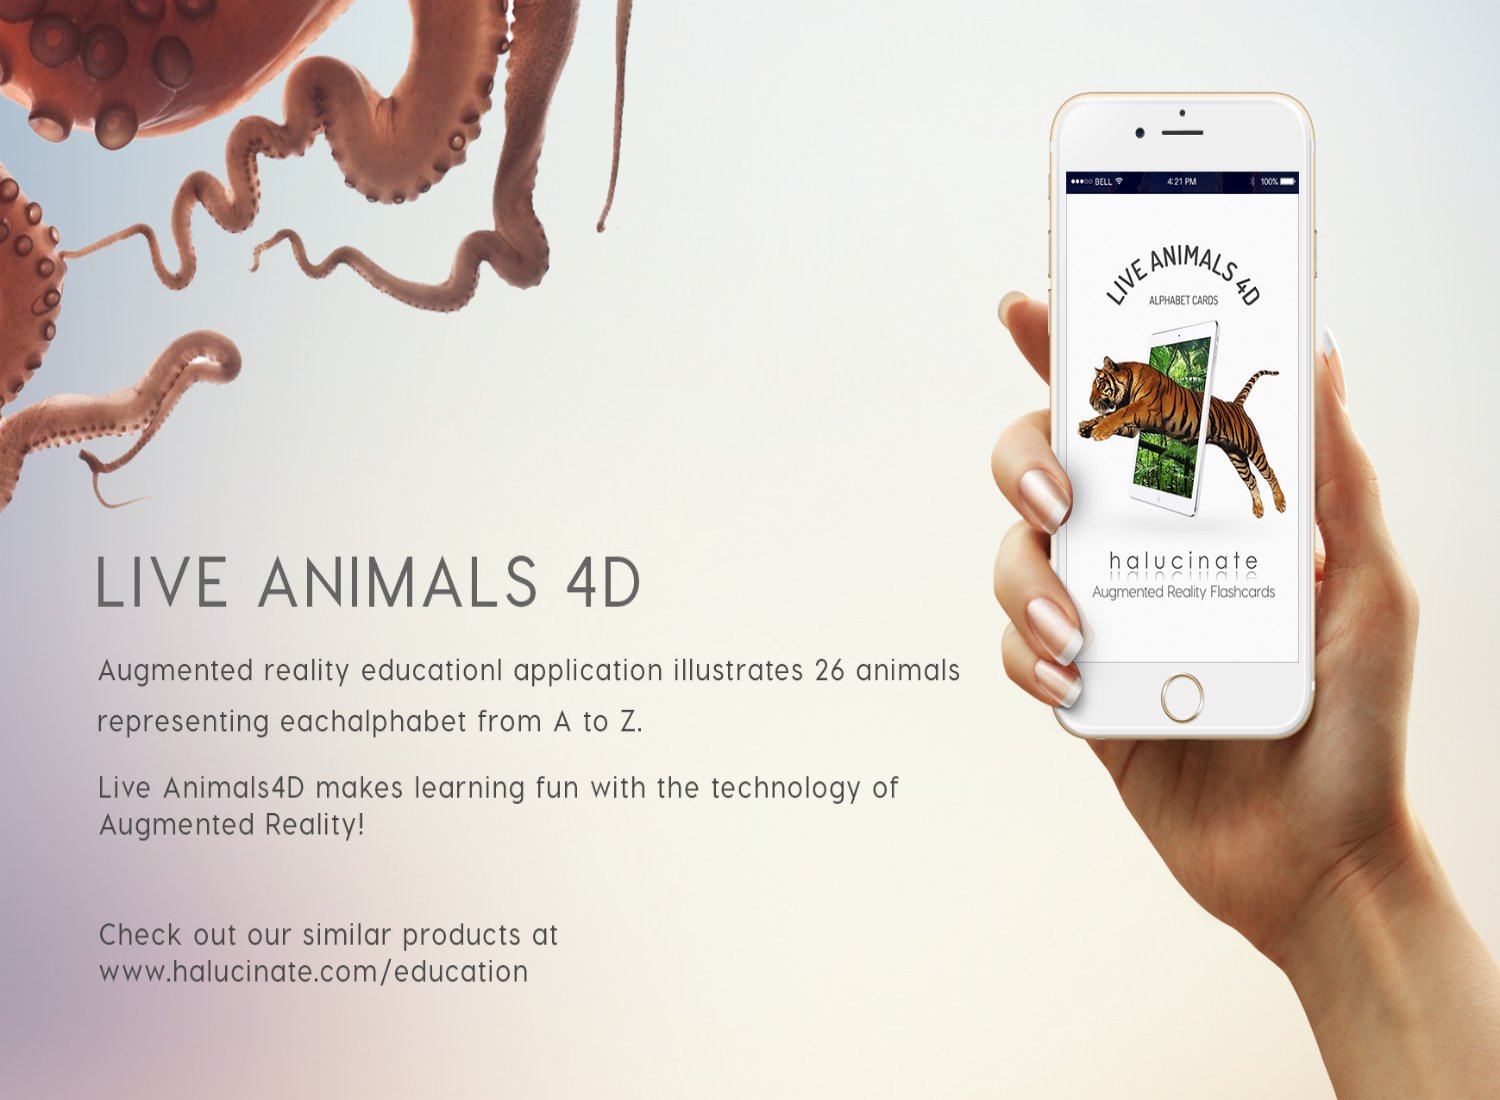 Live Animals 4D - Augmented Reality Learning Flash Cards product image